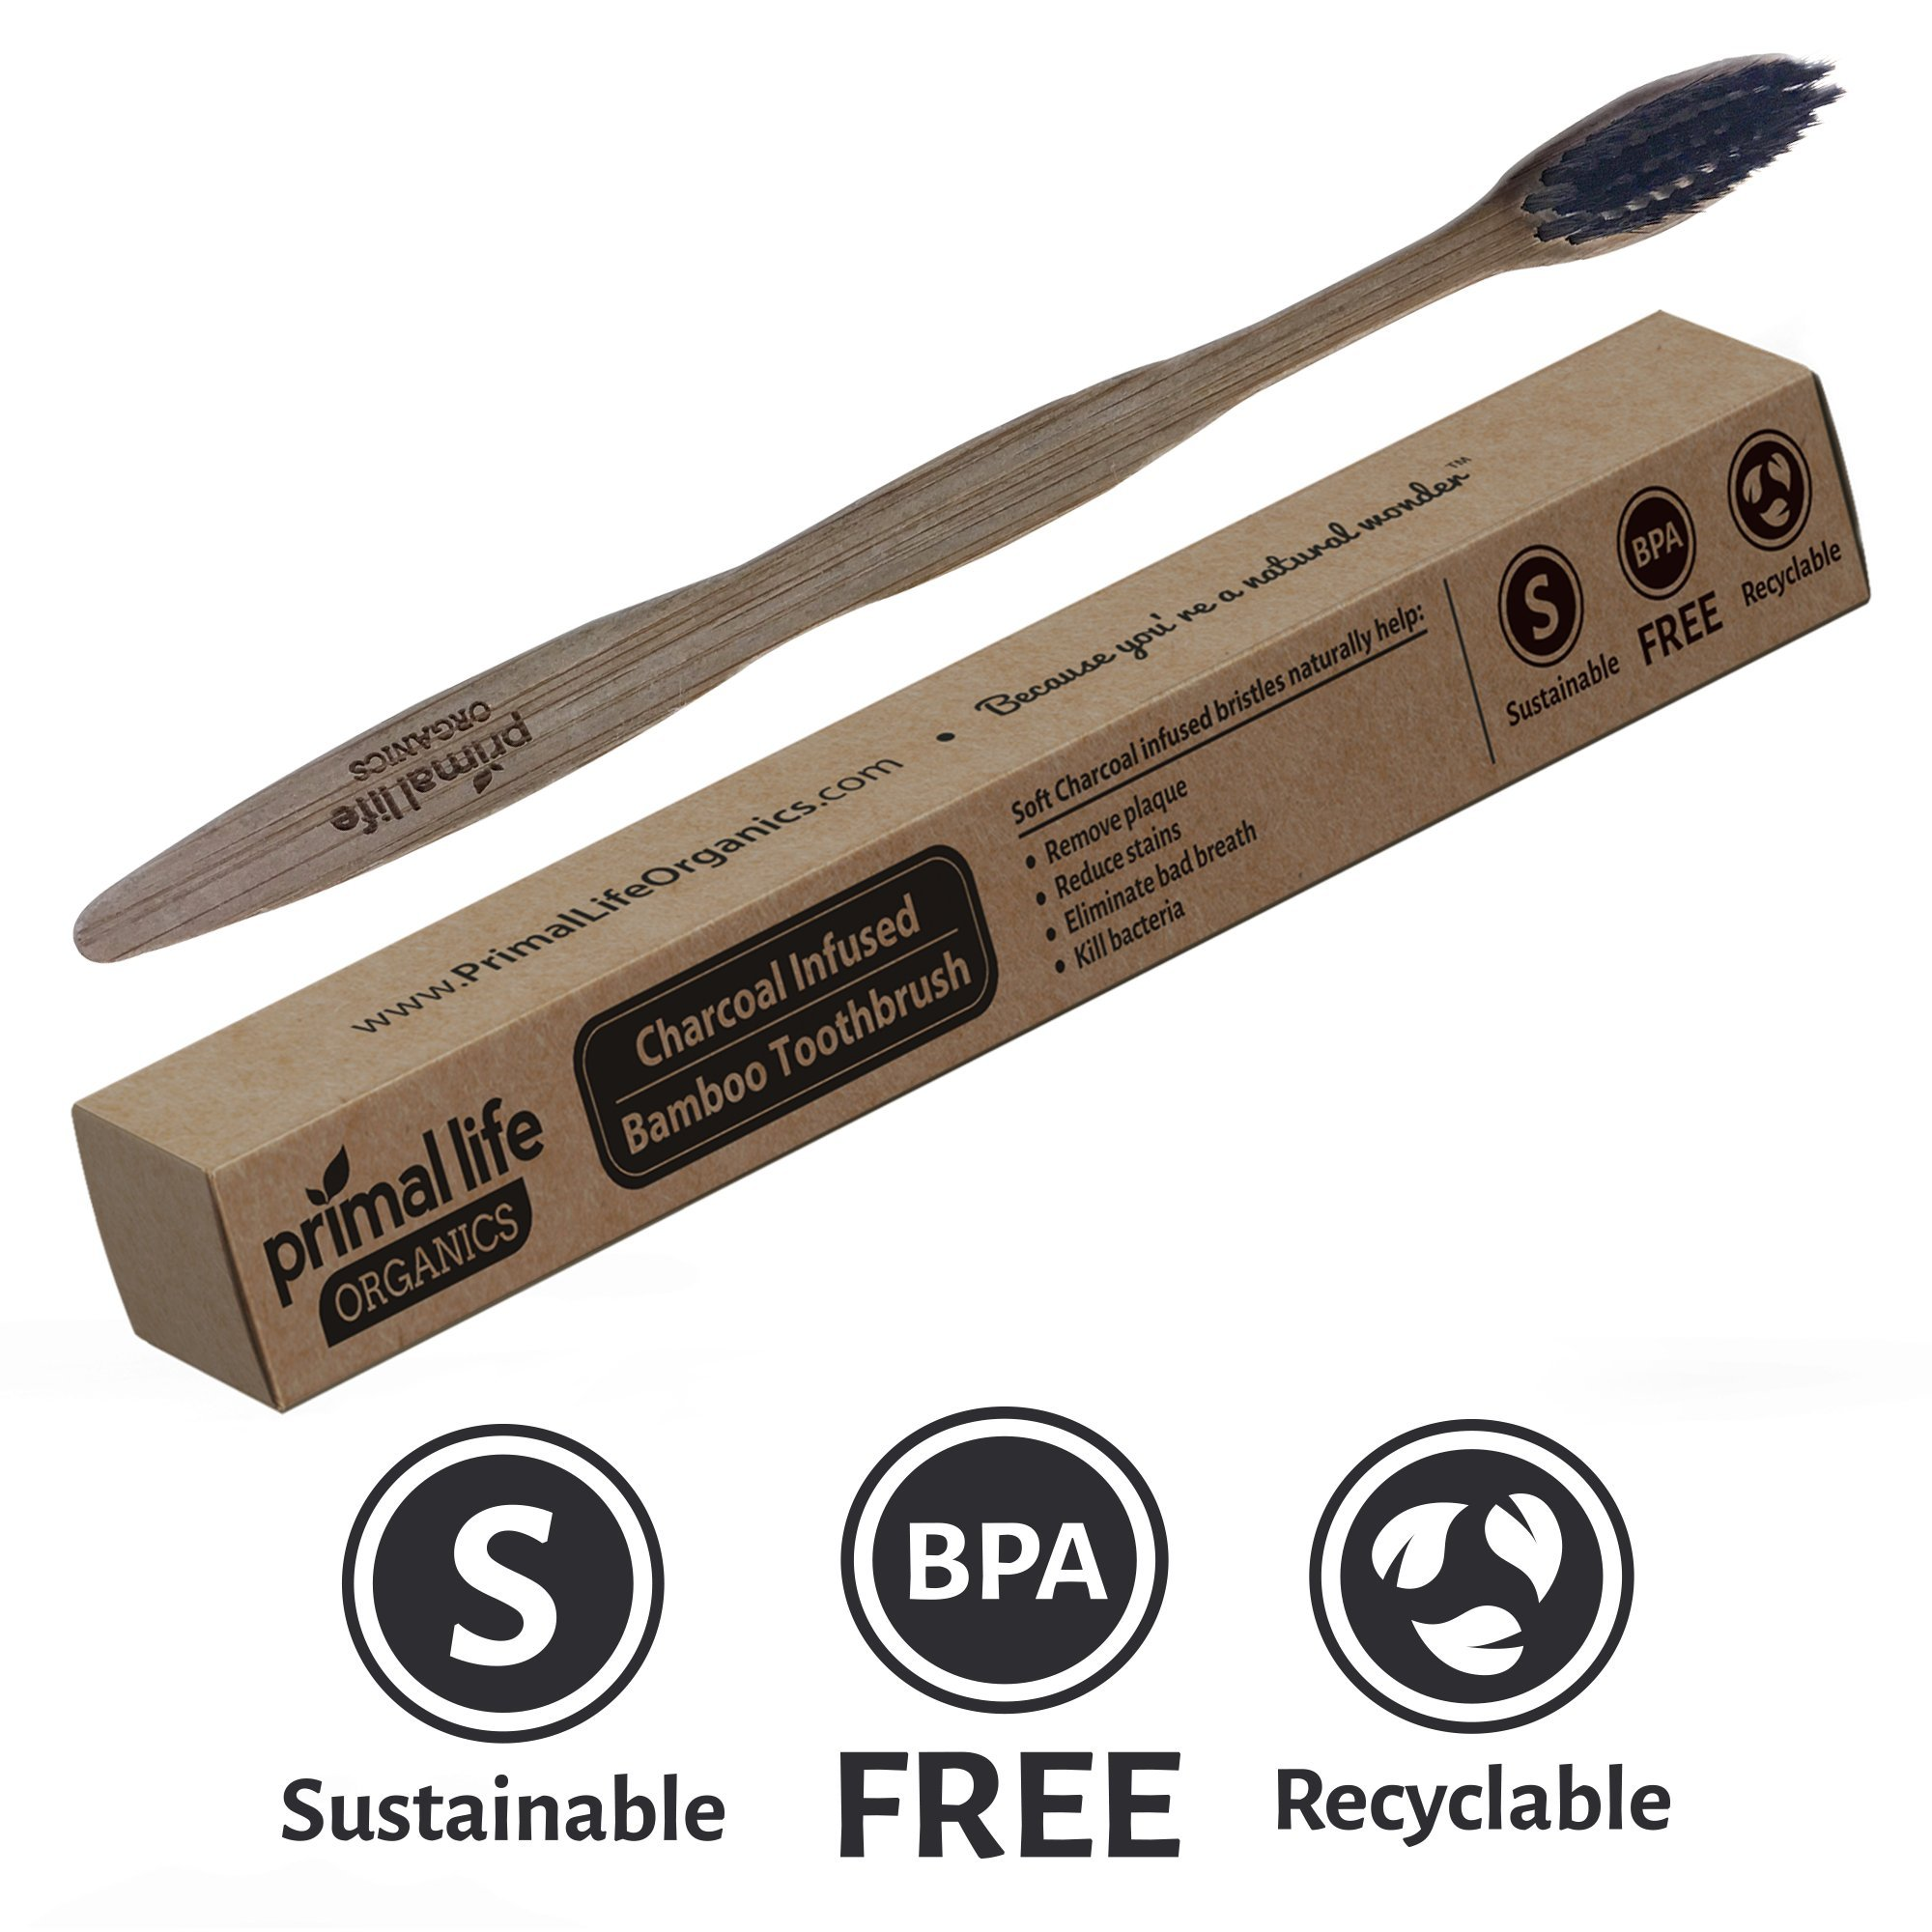 Charcoal Ion Toothbrush - Help Eliminate Bad Breath, Kill Bacteria & Reduce Stains - Clean, Detoxify, Whiten & Remove Plaque 100% Naturally! - Primal Life Organics